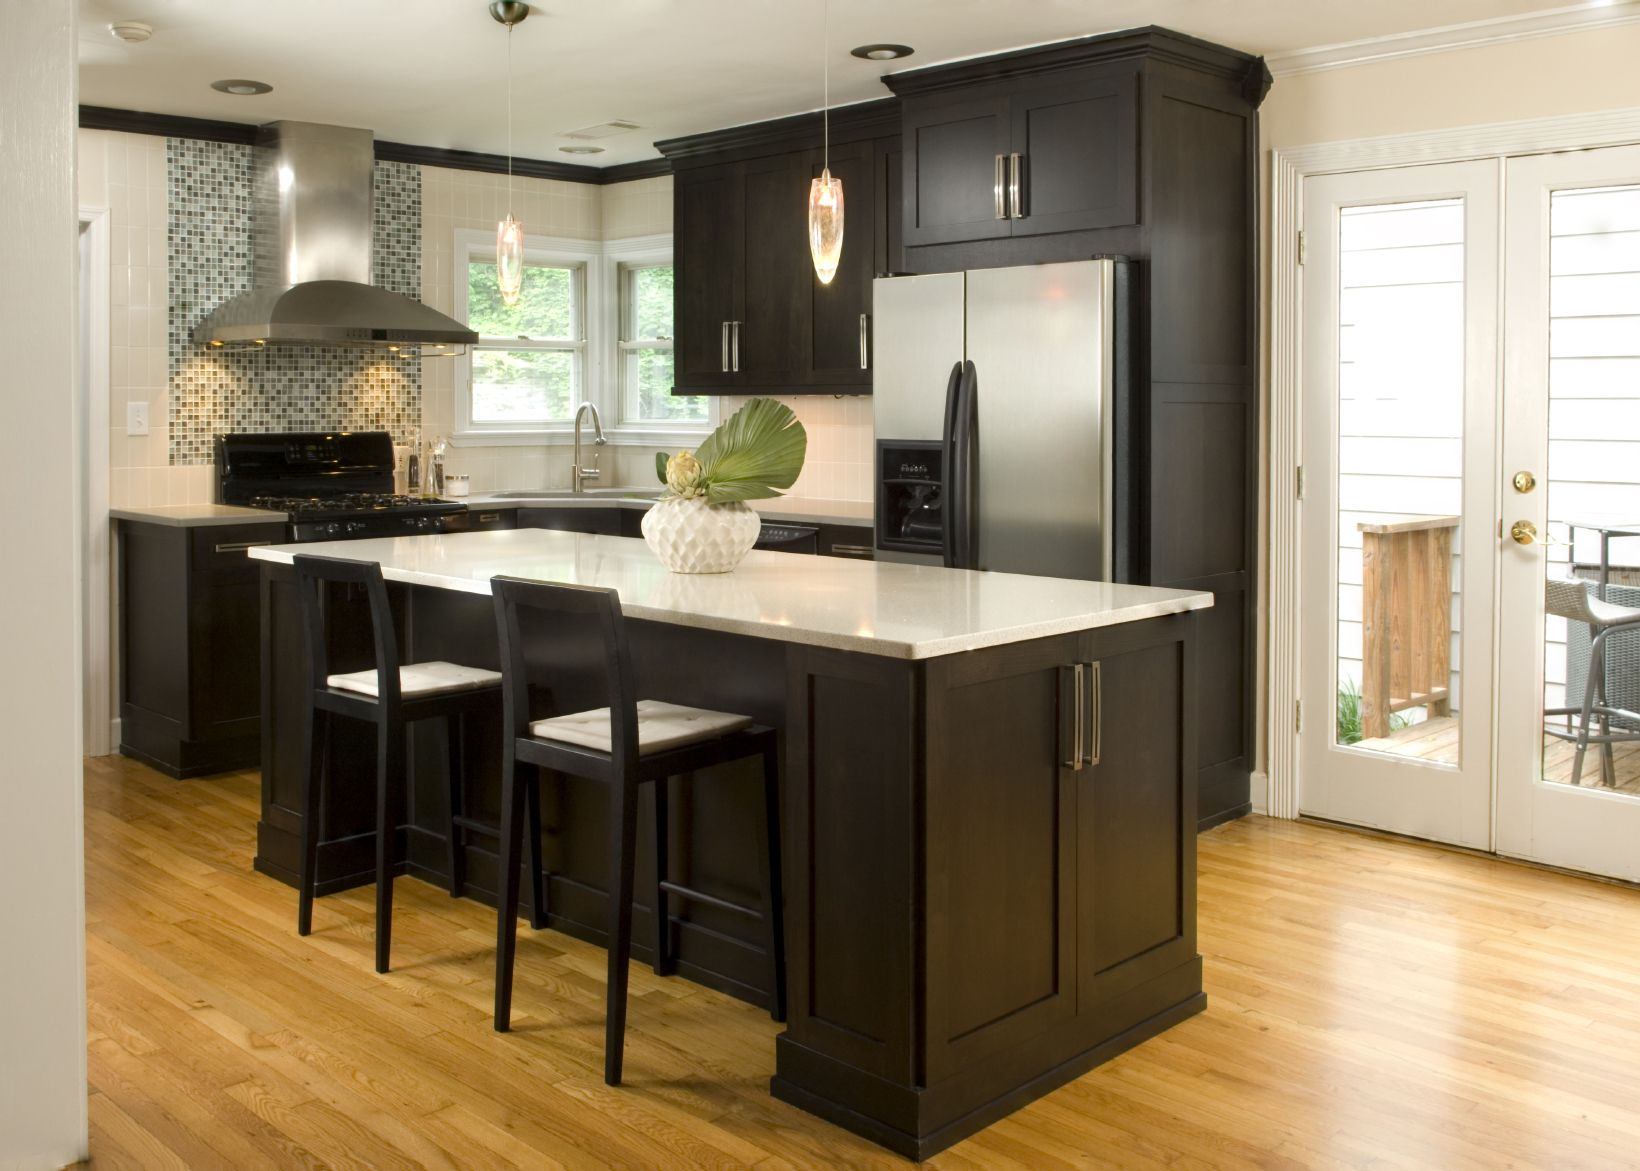 52 Dark Kitchens With Dark Wood Or Black Kitchen Cabinets 2020 Dark Kitchen Cabinets Hardwood Floors In Kitchen Kitchen Design Small